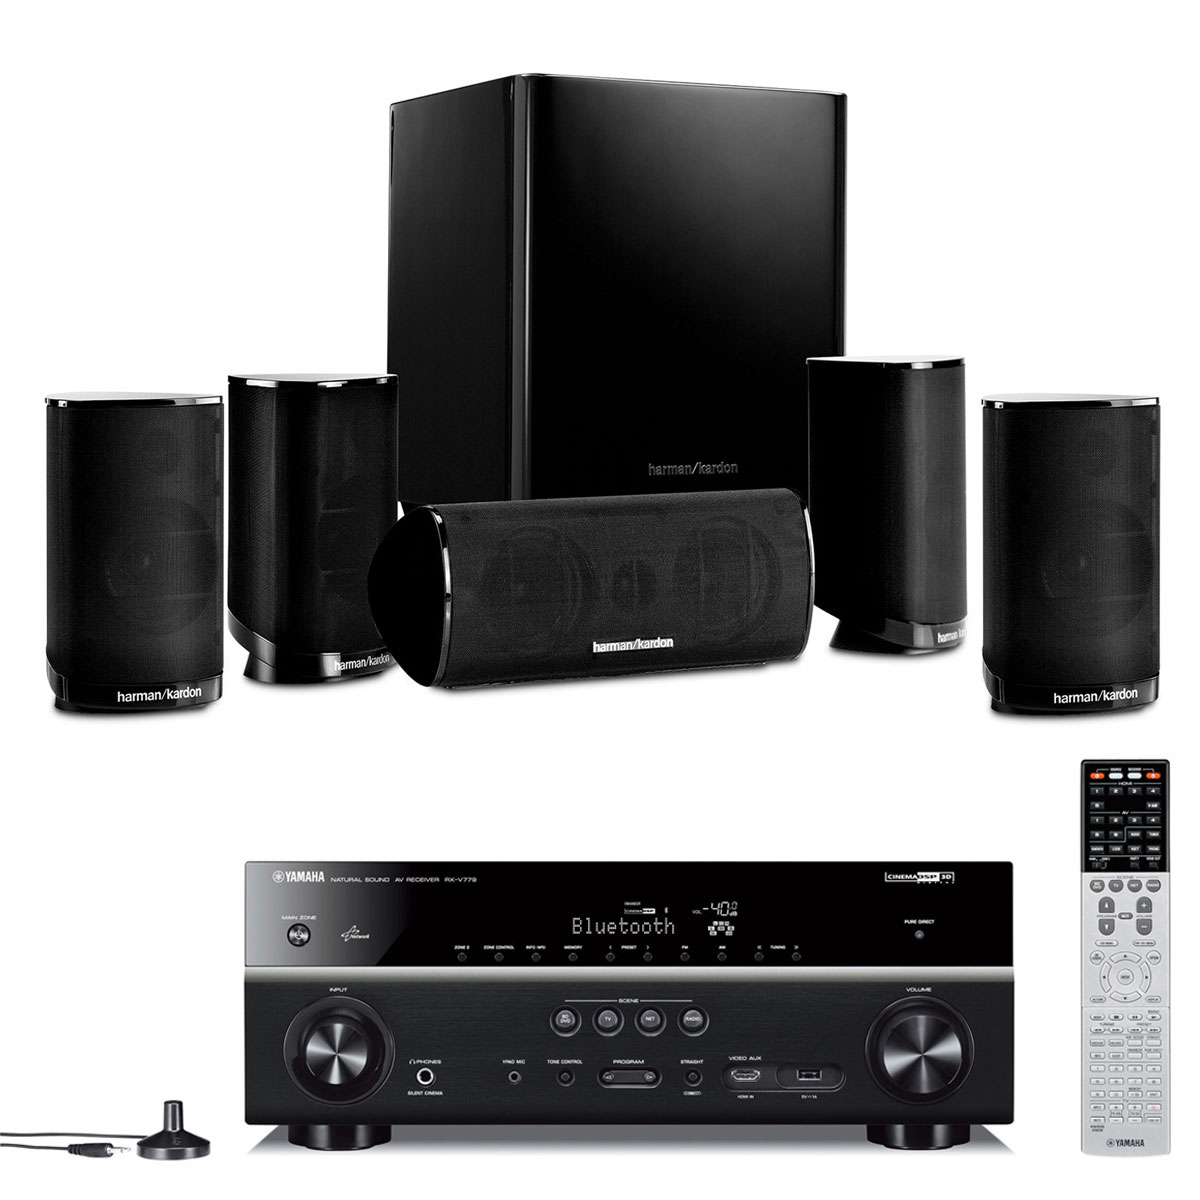 yamaha rx v779 noir harman kardon hkts 9 ensemble home. Black Bedroom Furniture Sets. Home Design Ideas